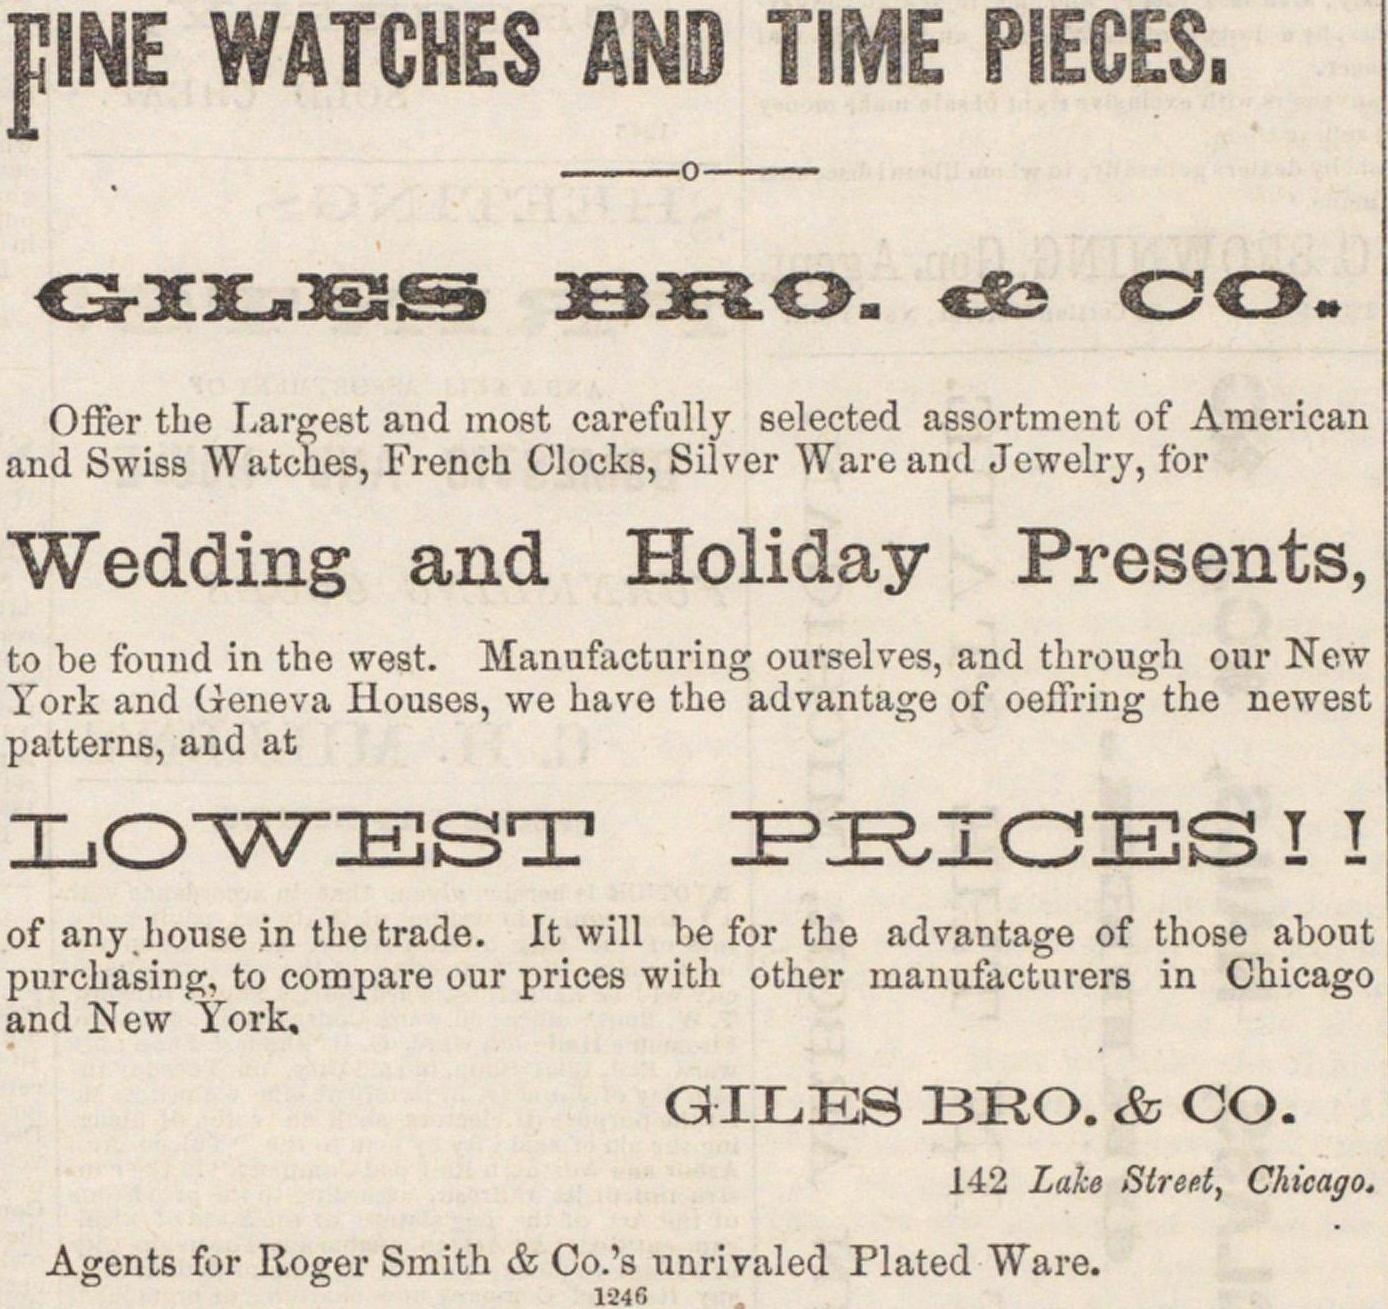 Giles Bro. & Co. image